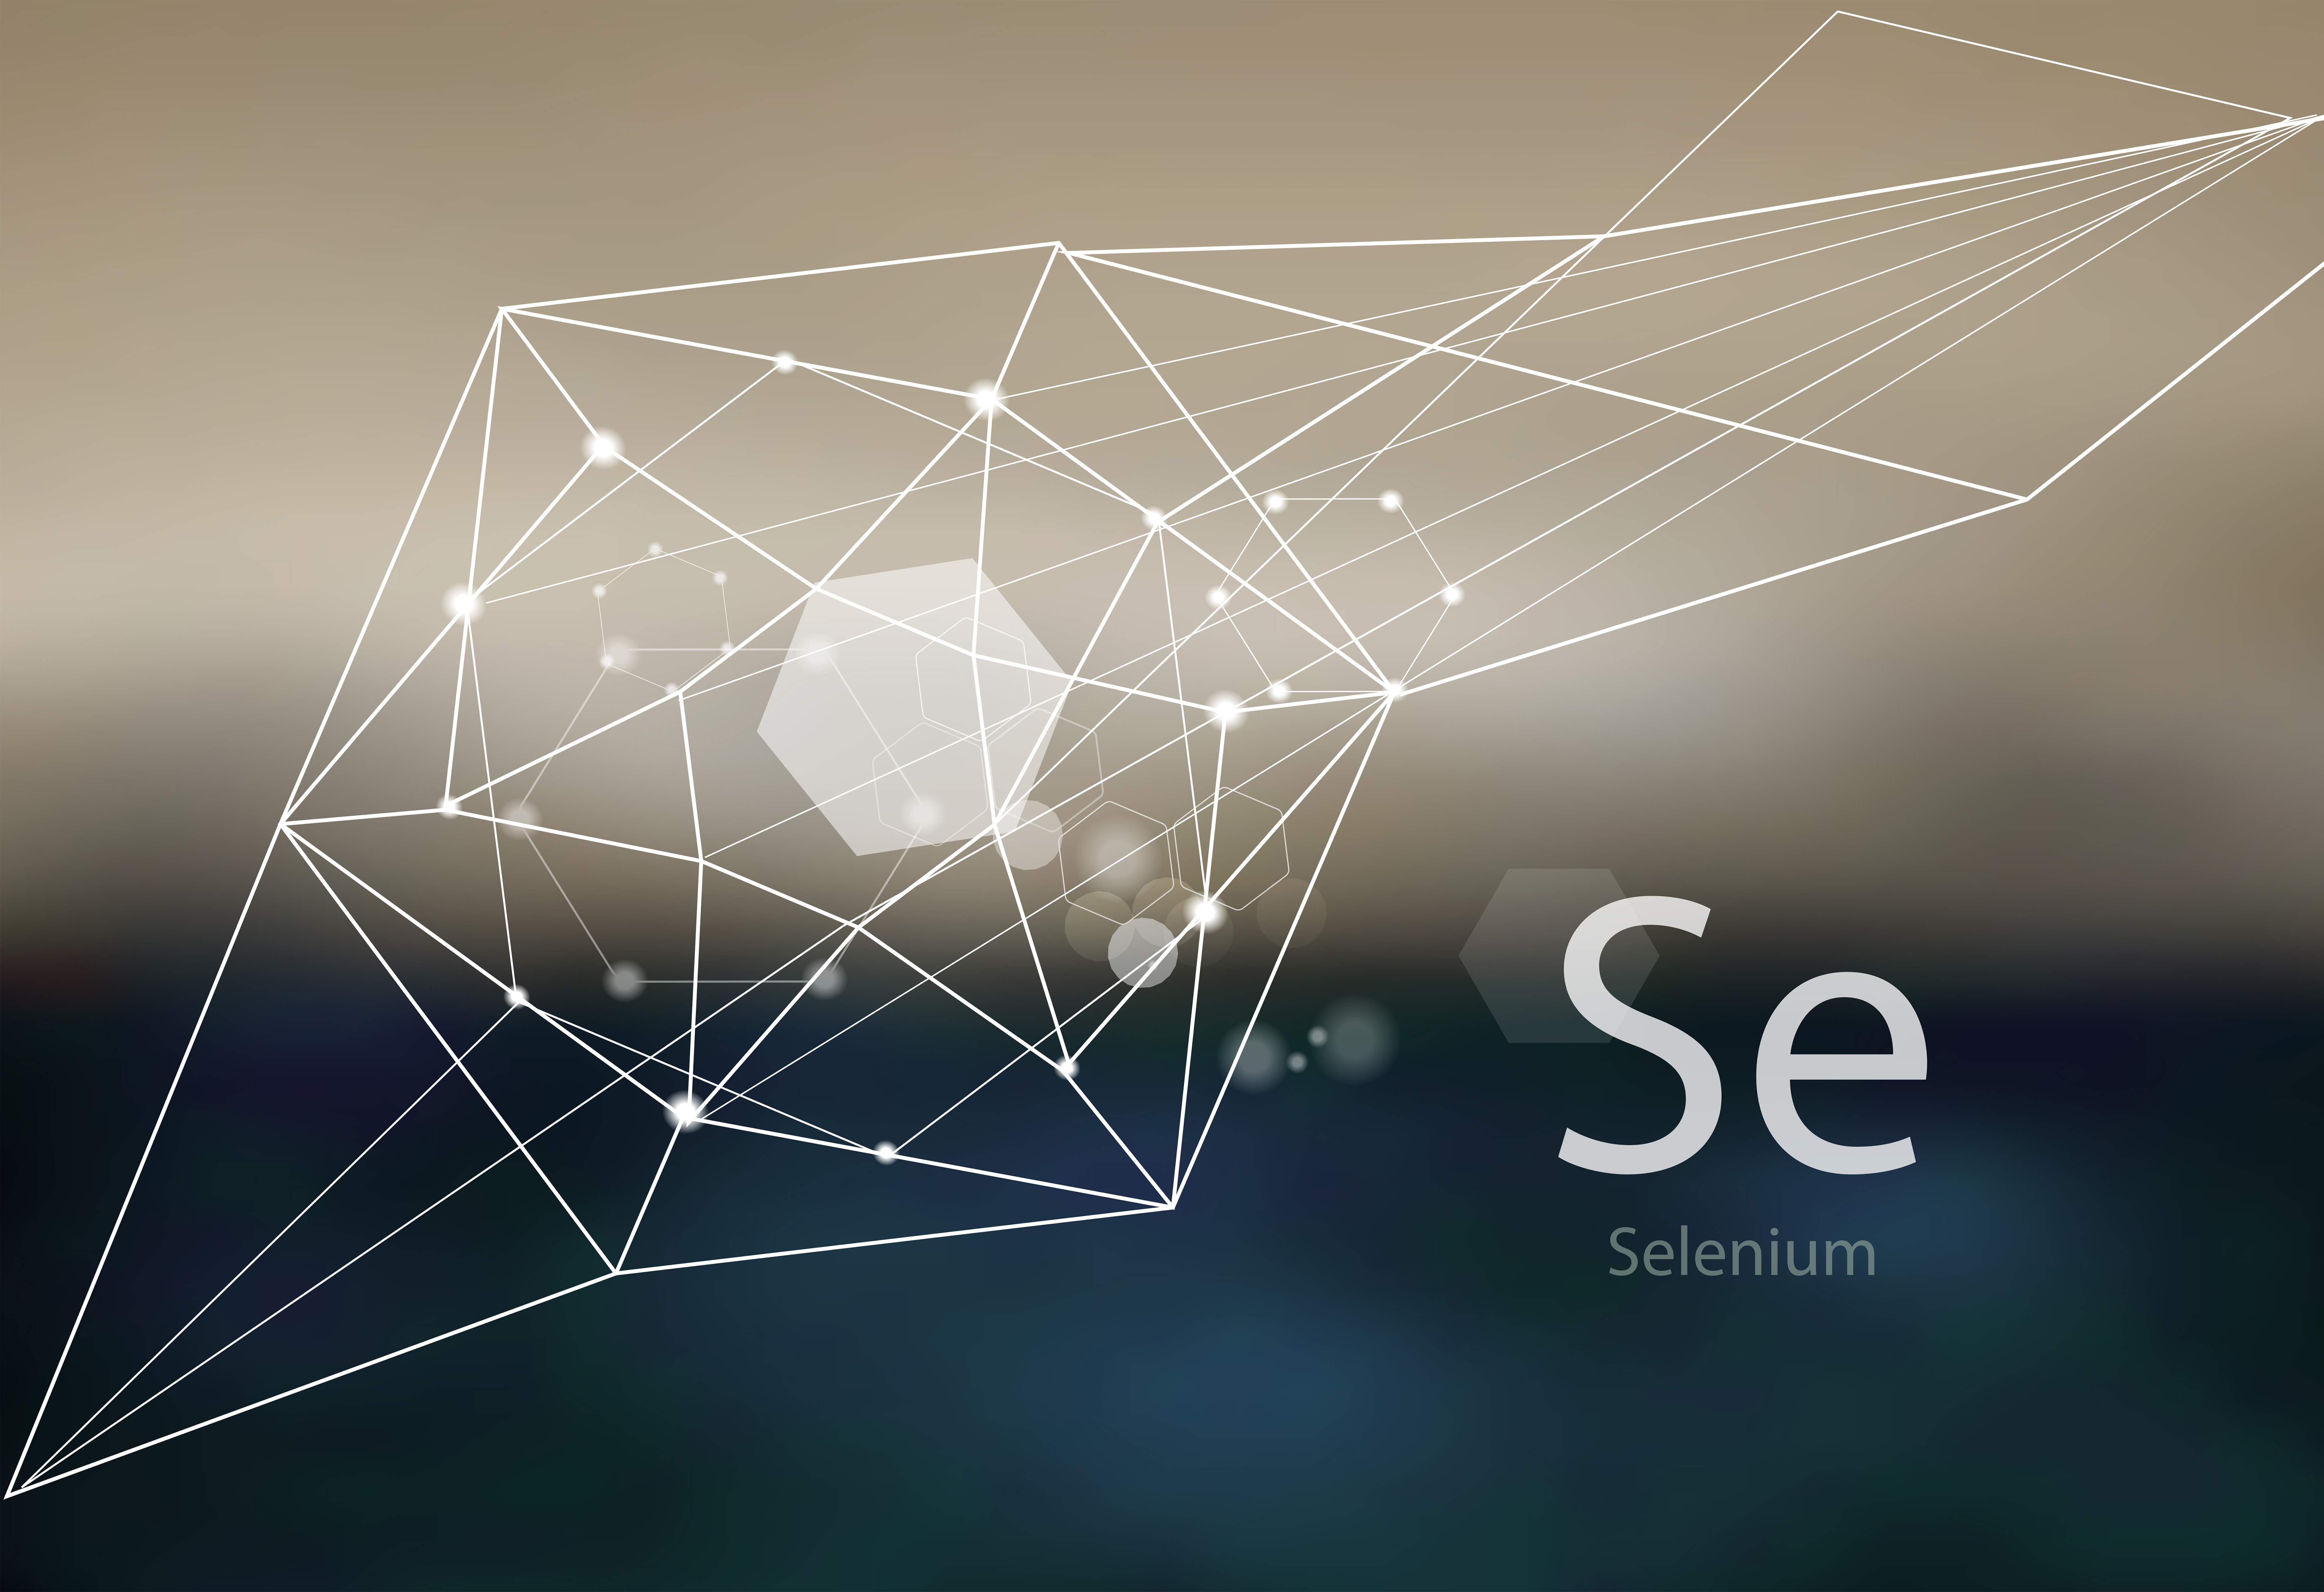 A diagram of the chemical element Selenium